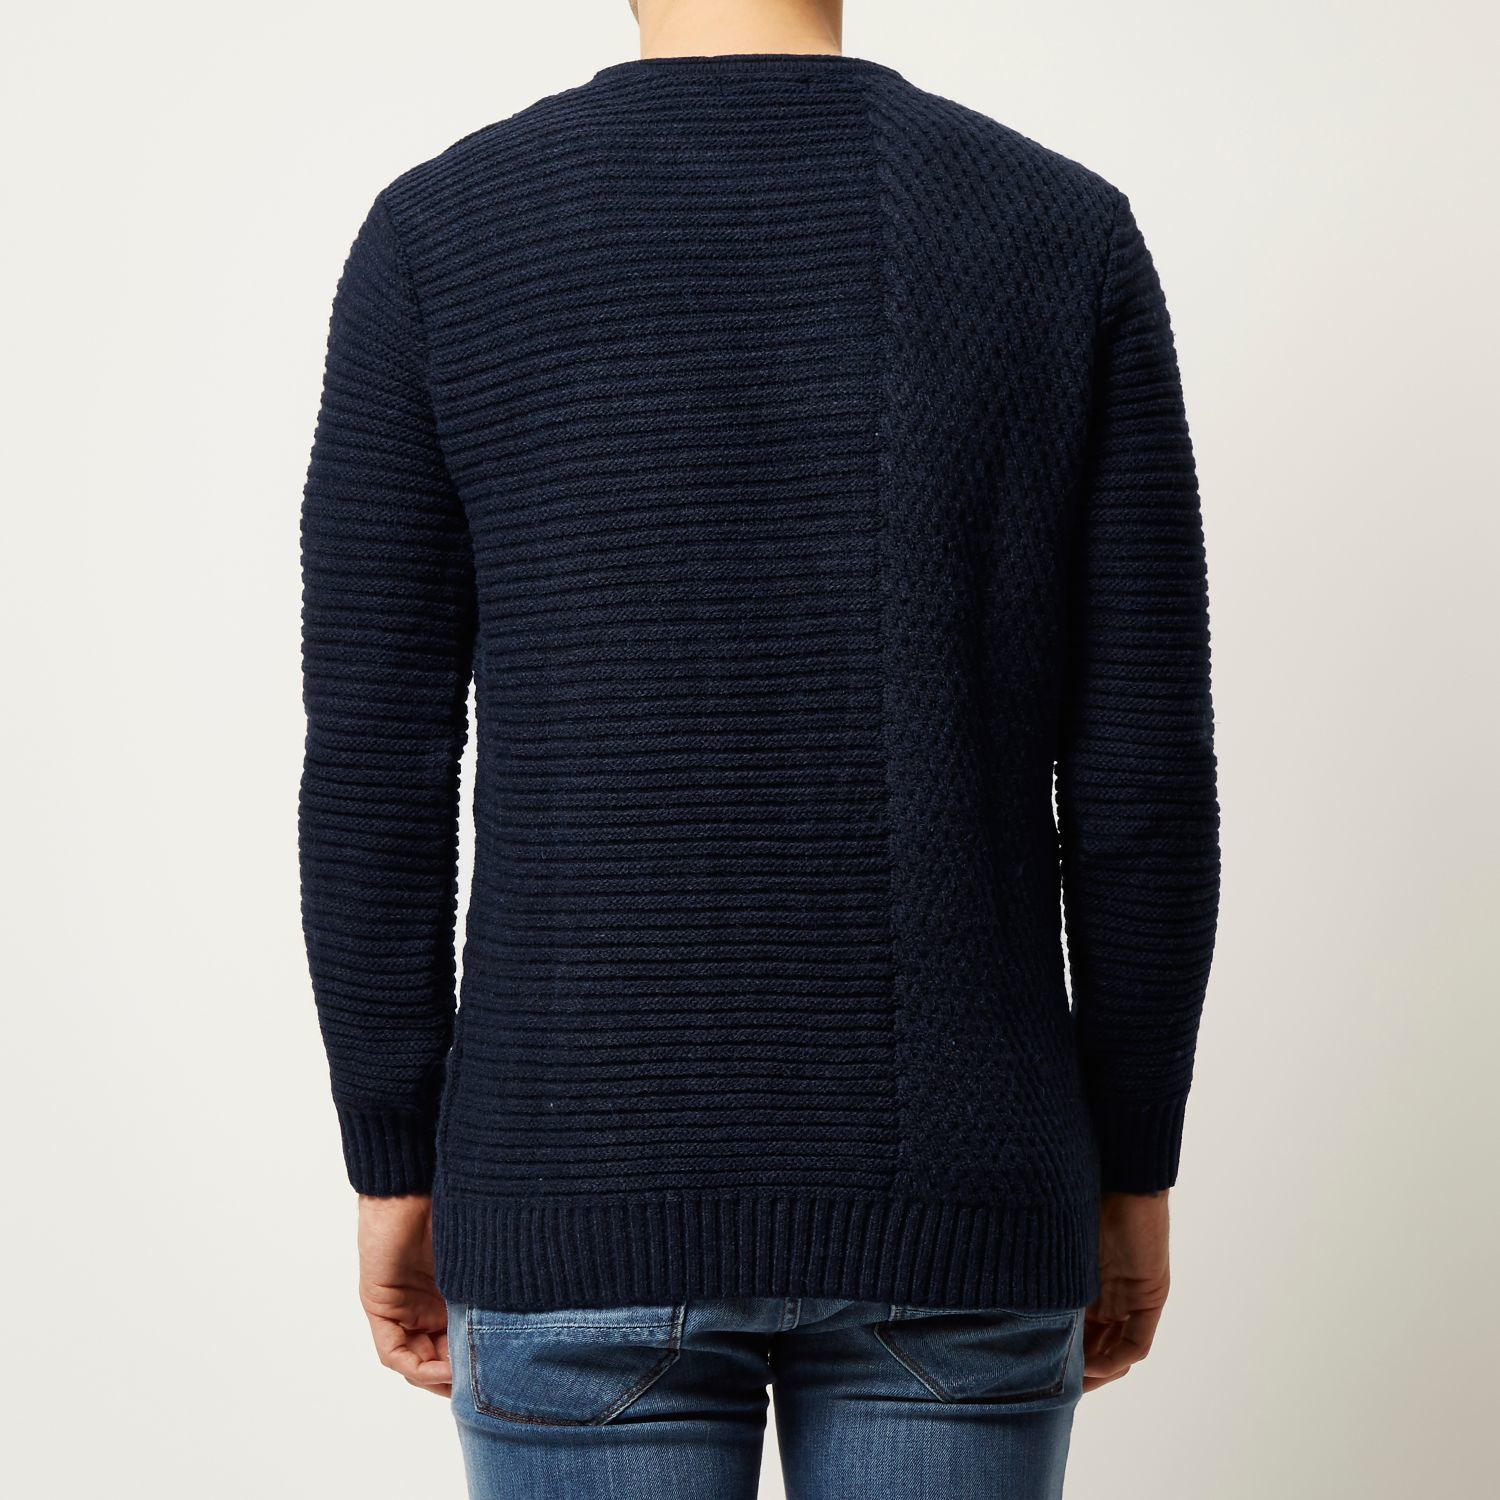 1e668667a110 River Island Navy Cable Knit Jumper in Blue for Men - Lyst